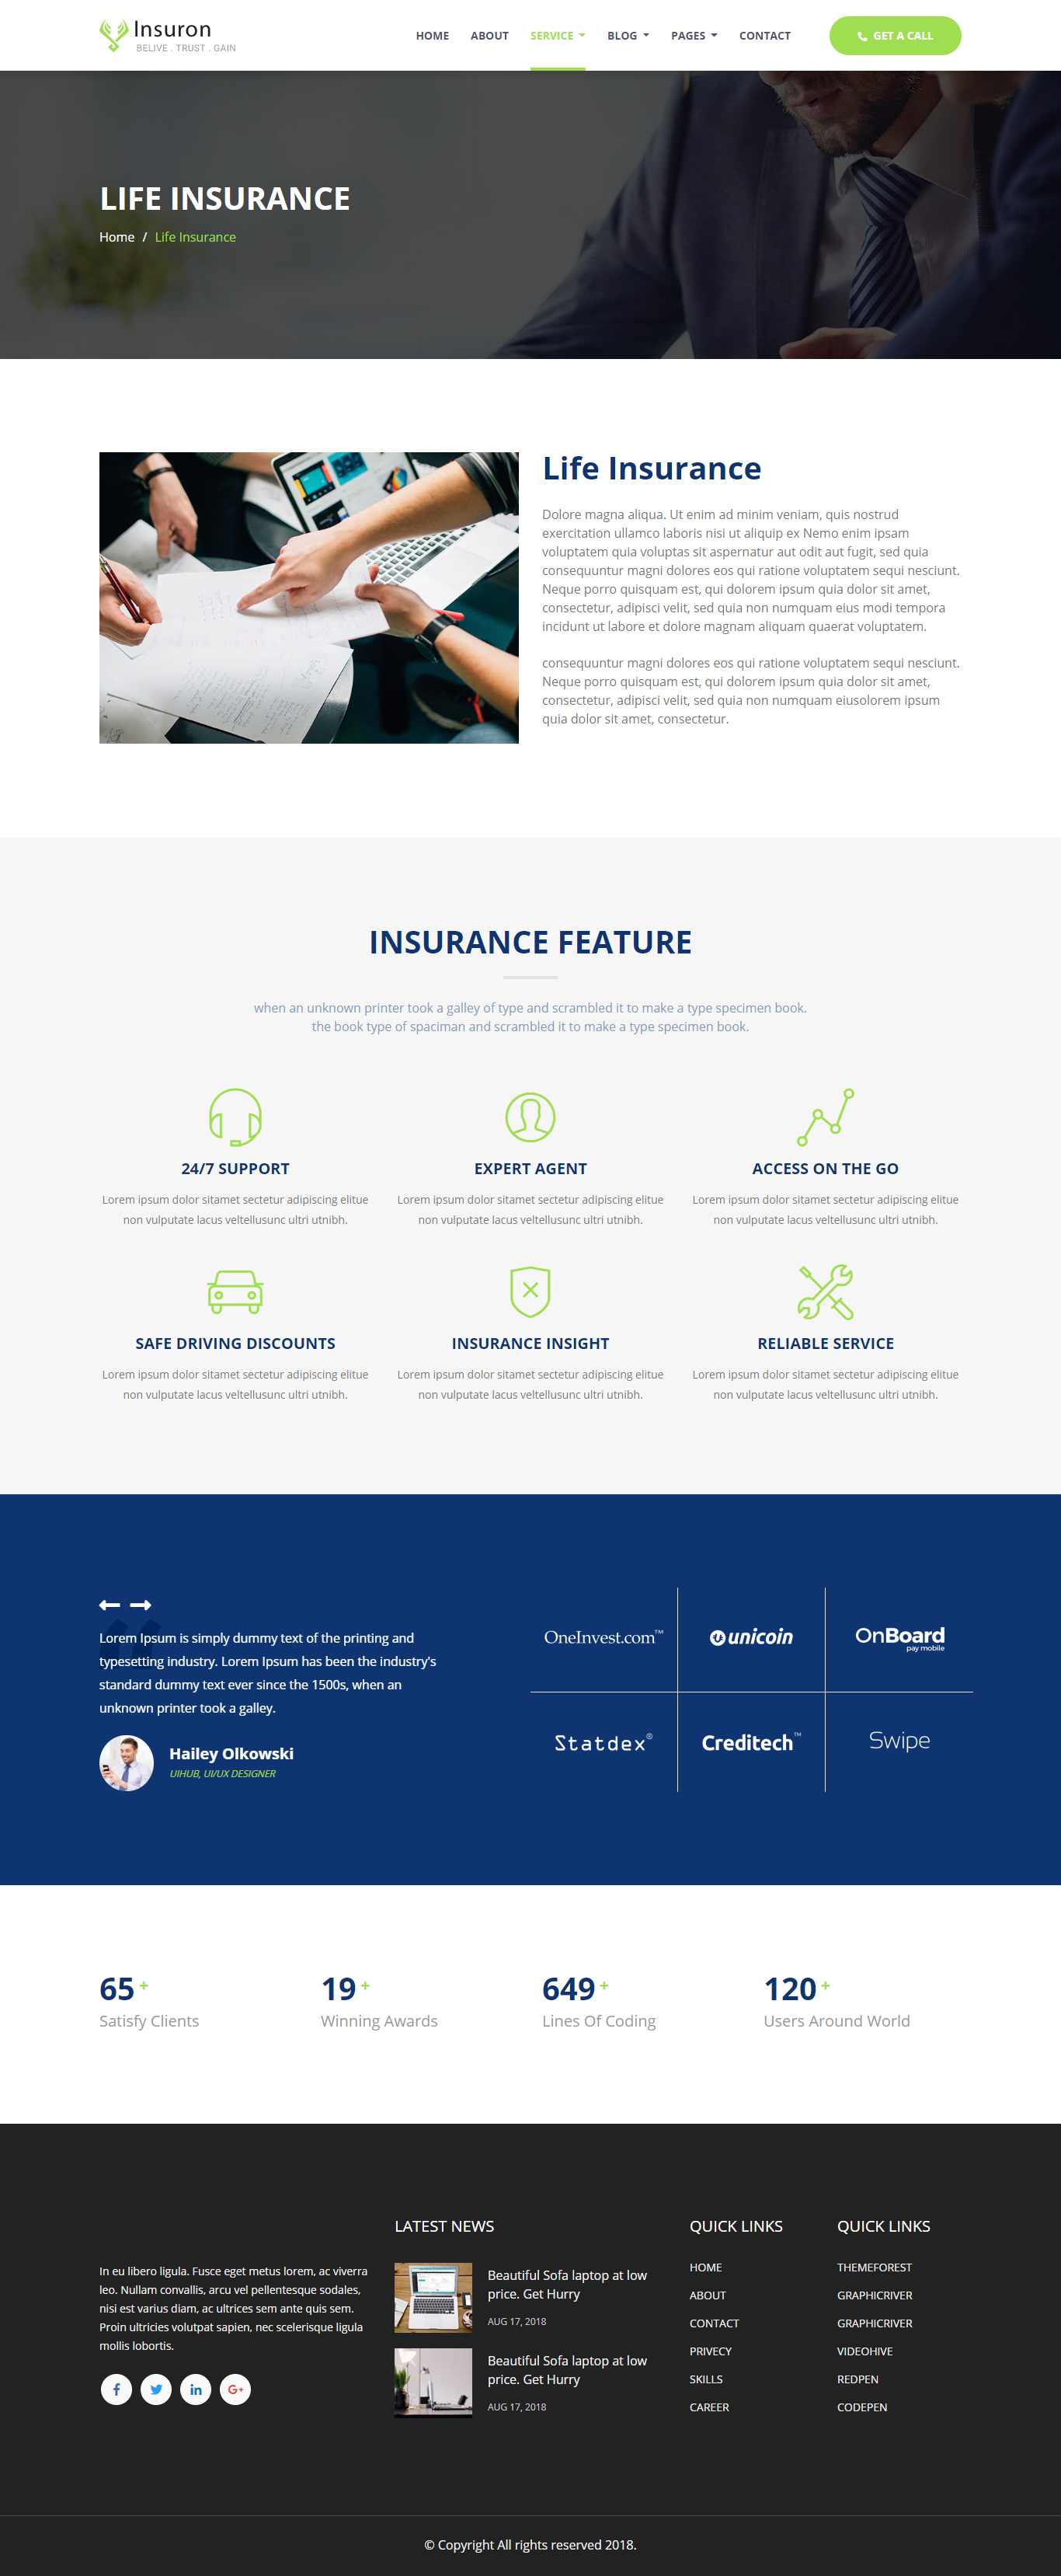 Insuron - Insurance Agency HTML5 Template (With images ...